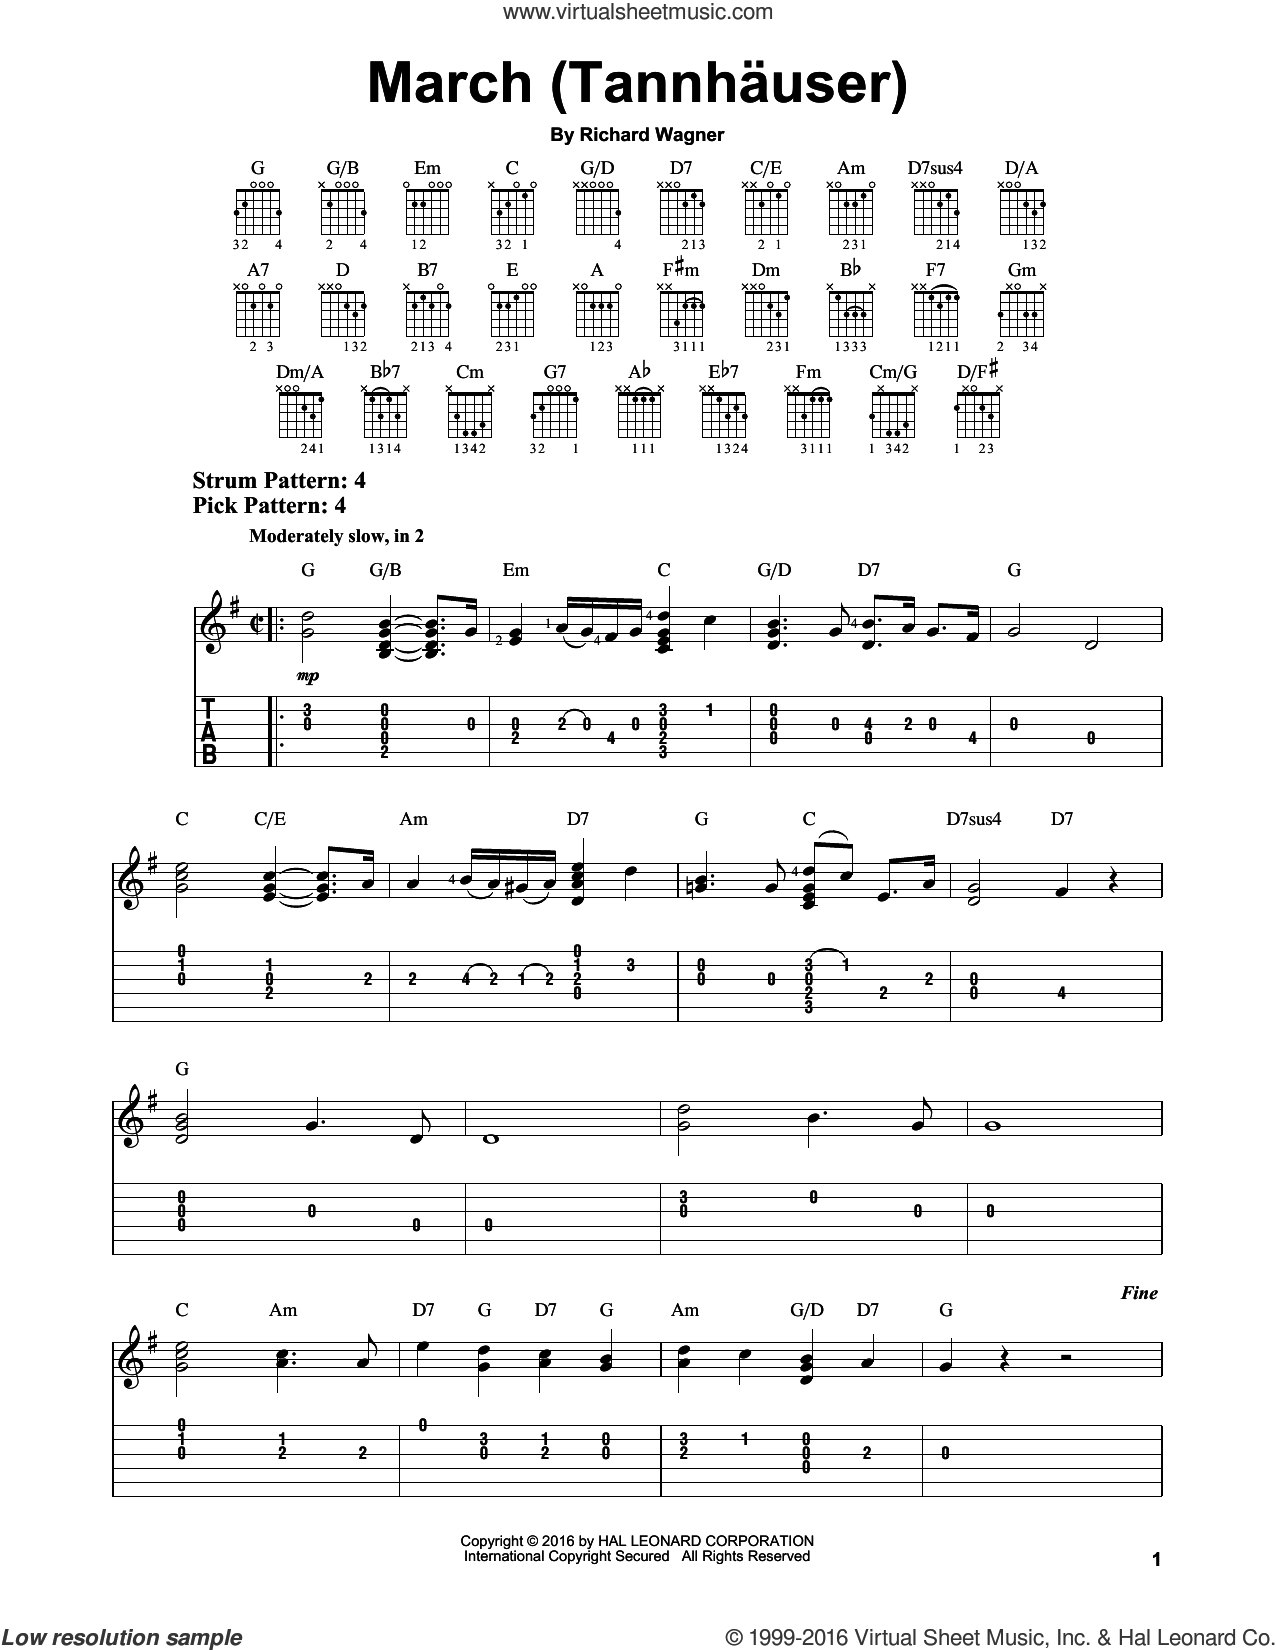 March (Tannhauser) sheet music for guitar solo (easy tablature) by Richard Wagner. Score Image Preview.